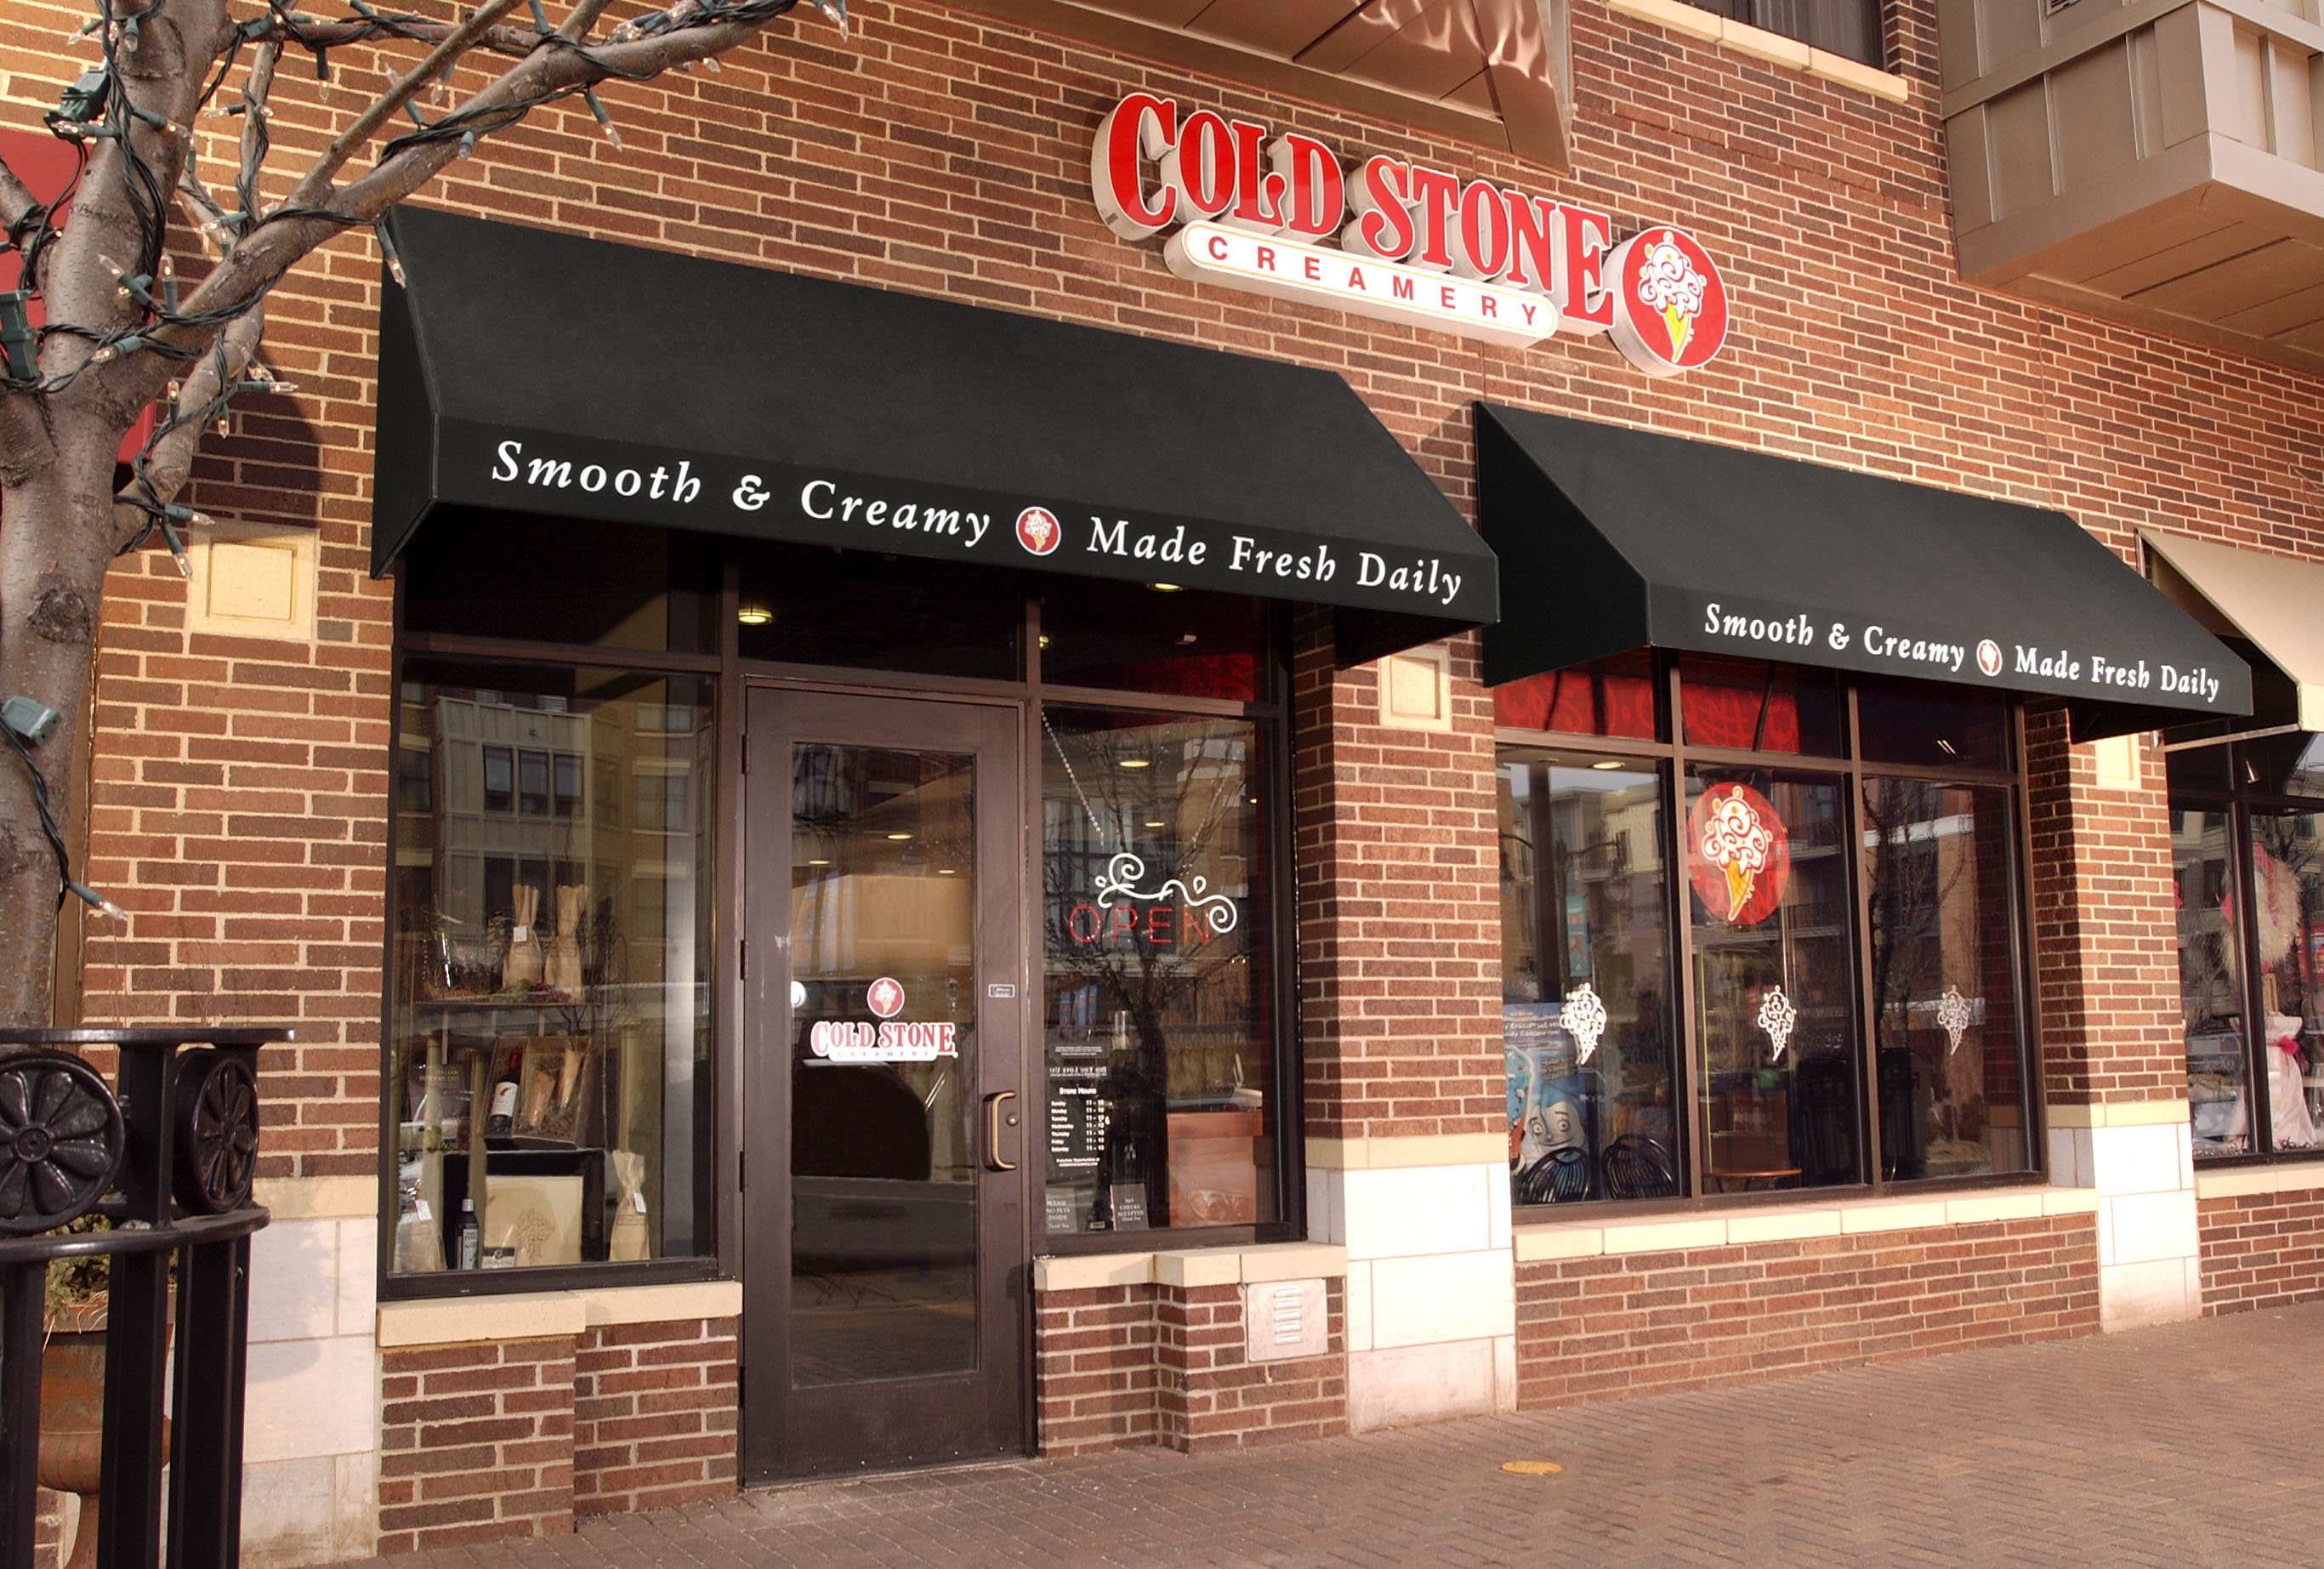 File:Cold Stone Store.jpg - Wikimedia Commons